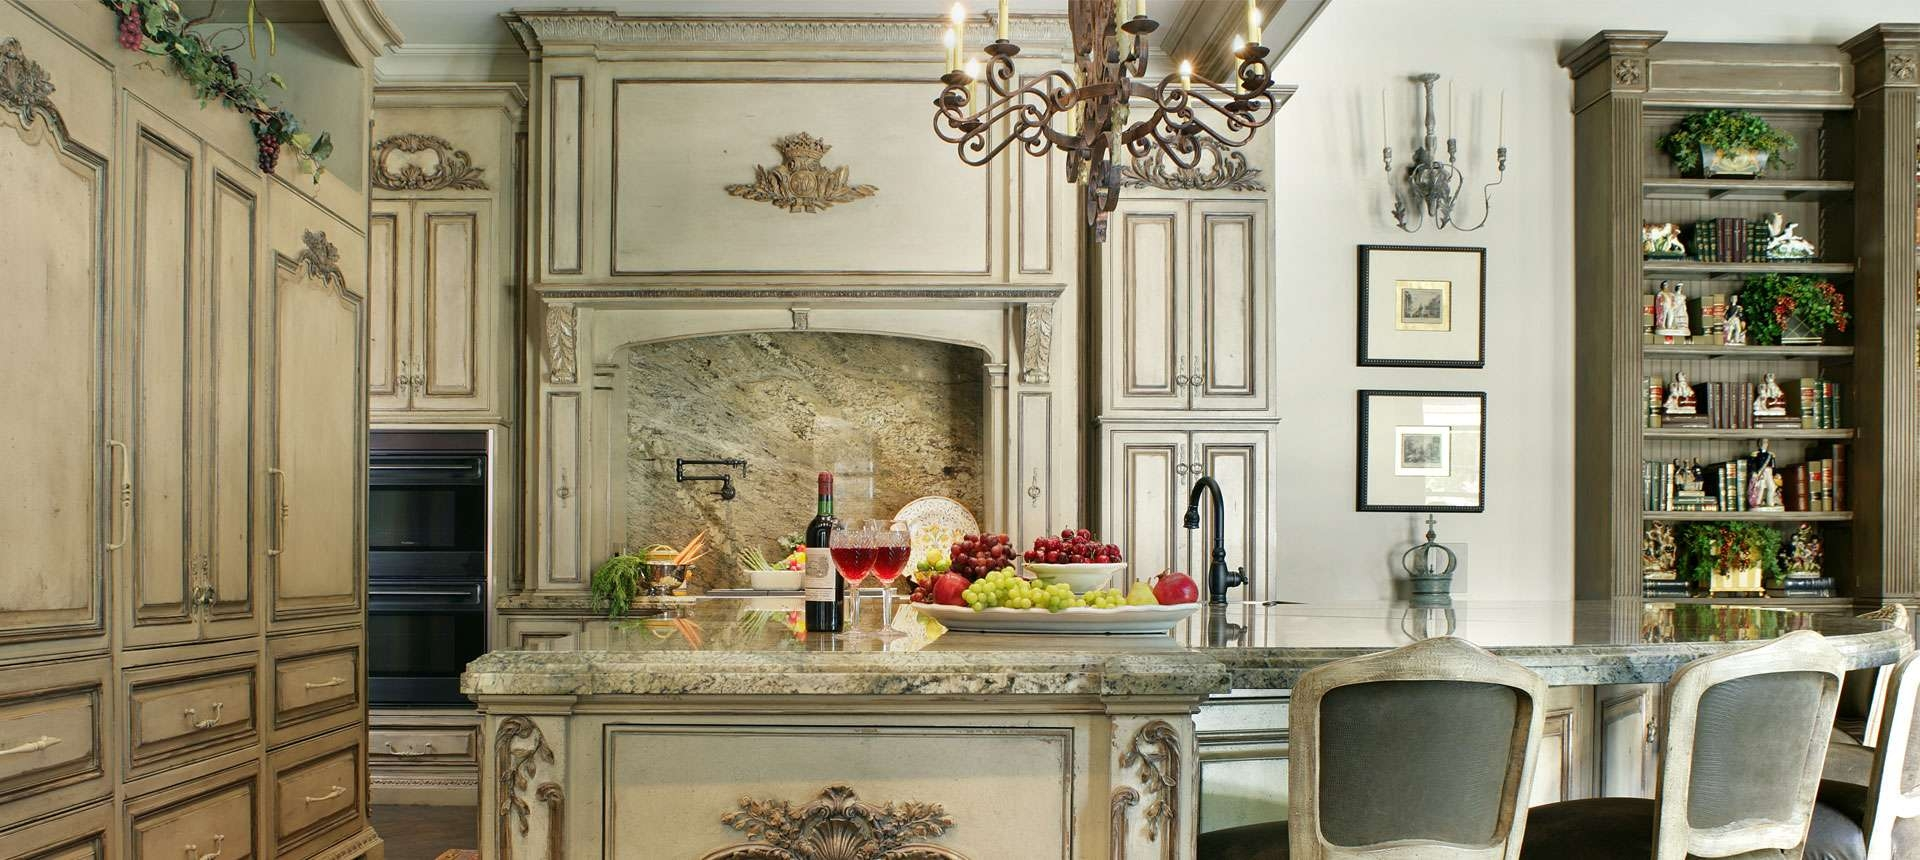 Habersham Home | Lifestyle Custom Furniture & Cabinetry Intended For Haversham Sideboards (View 7 of 20)